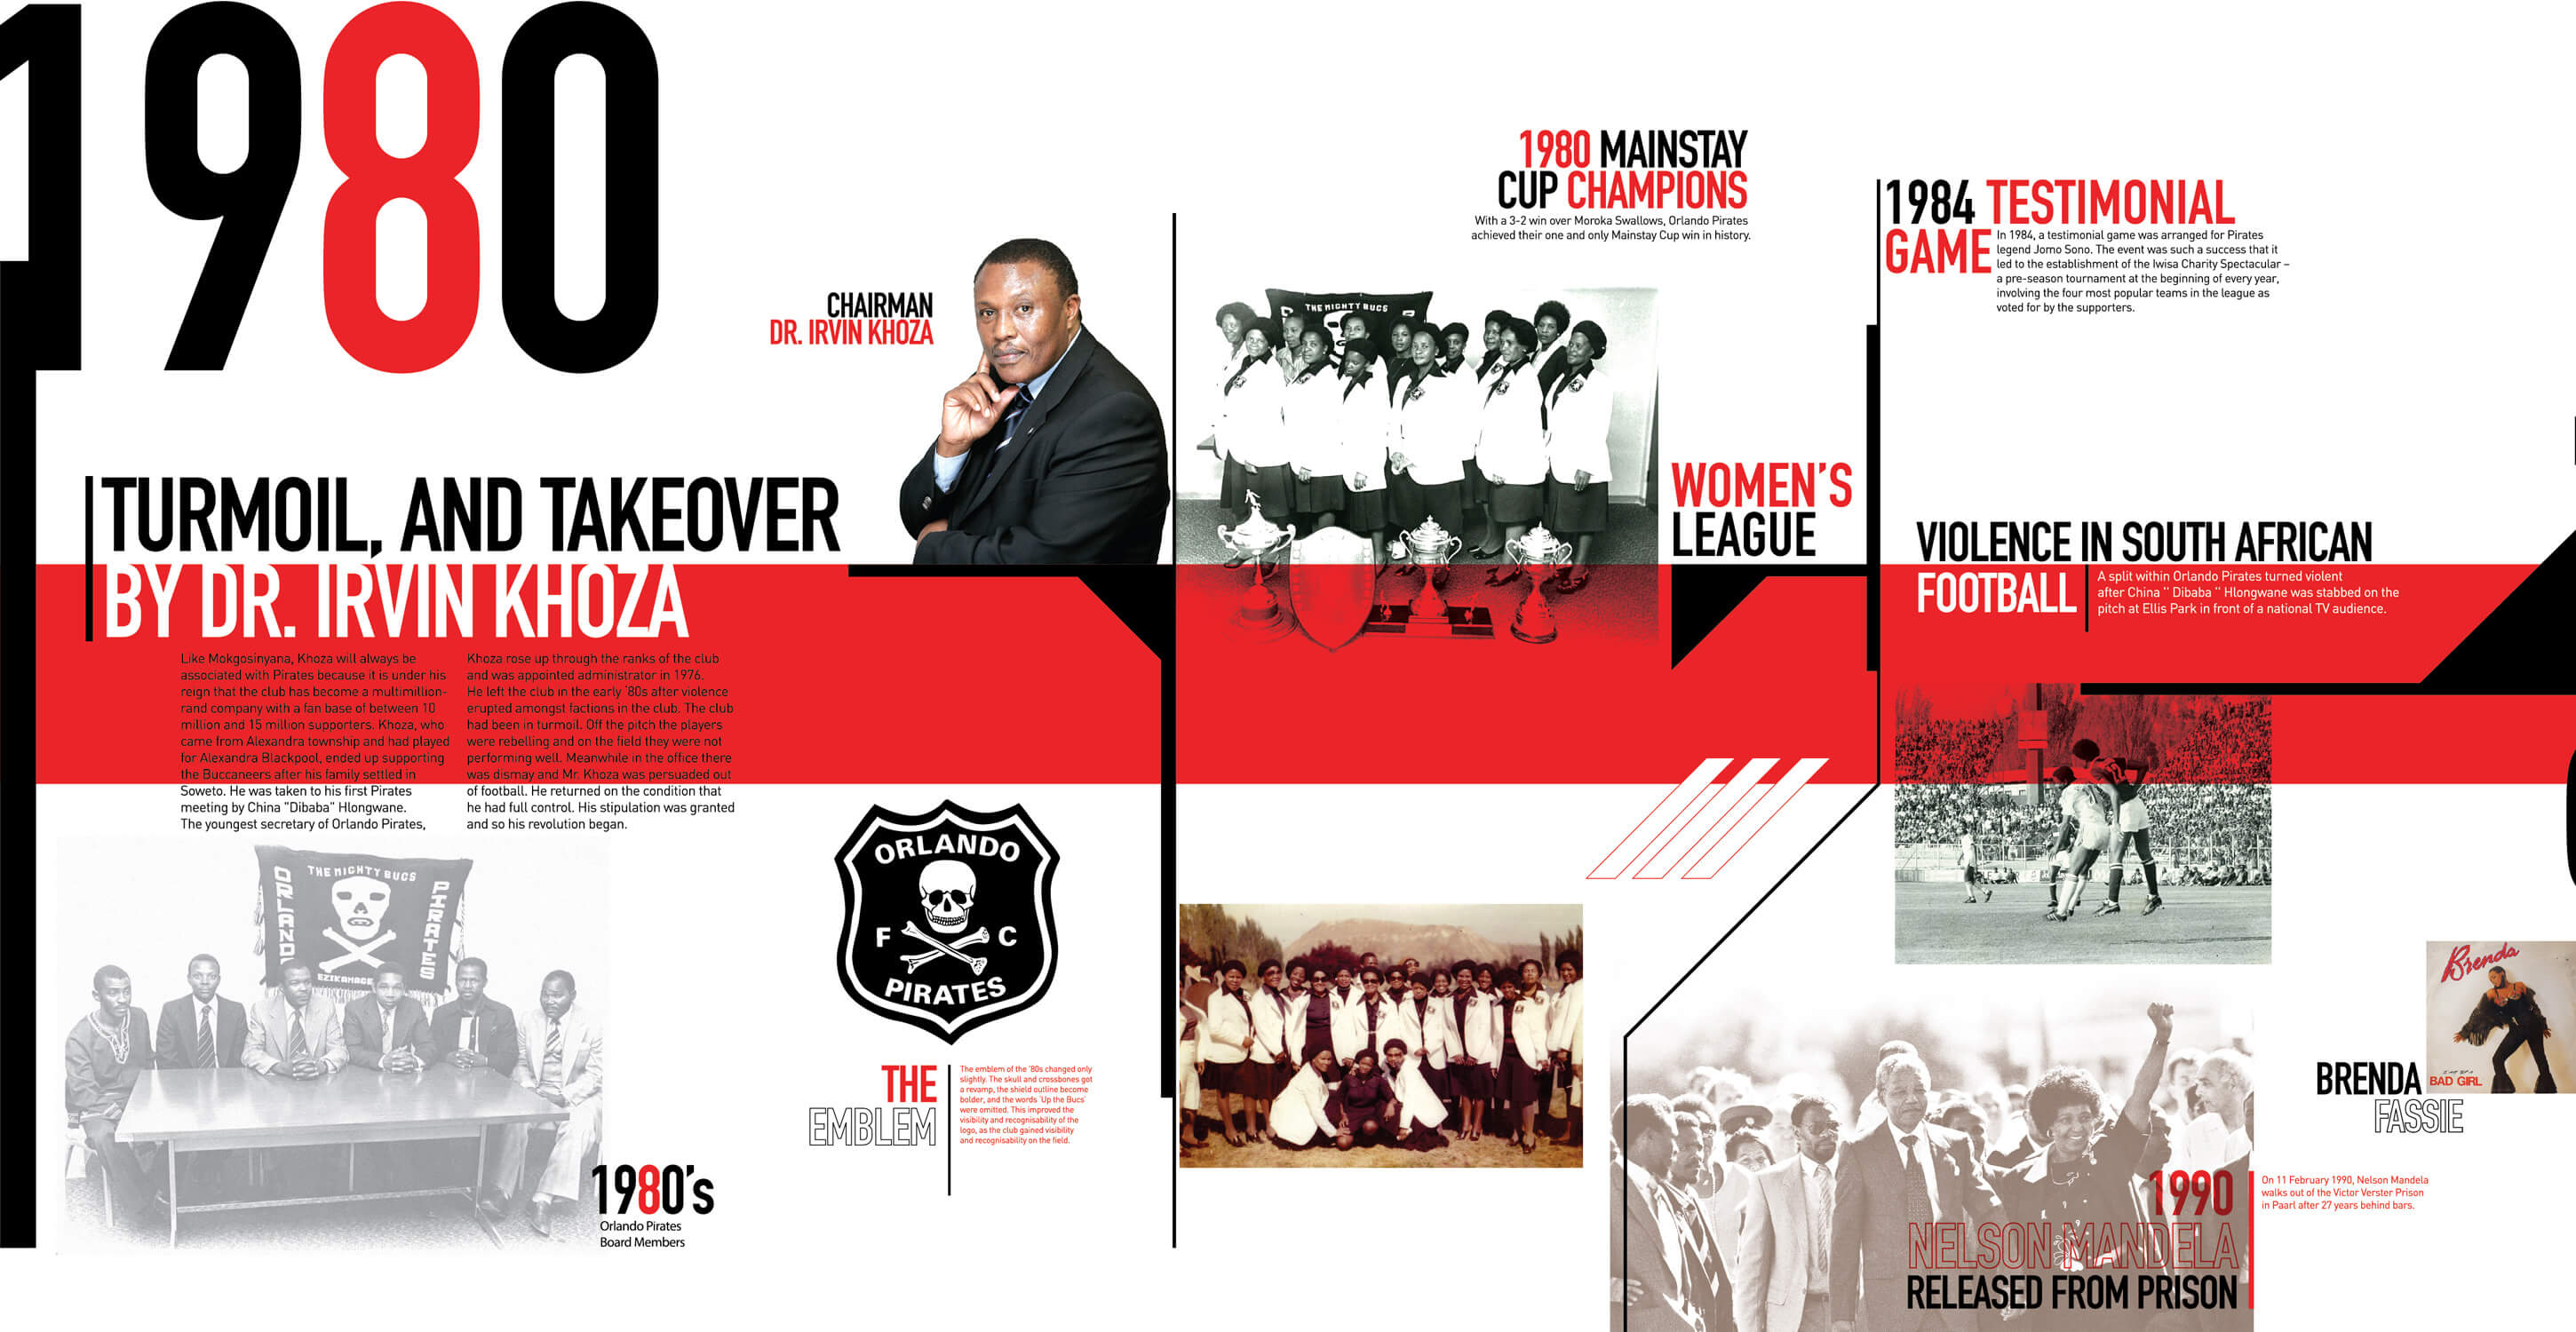 cfa22b643c4 A Guide To The History of Orlando Pirates Football Club South Africa